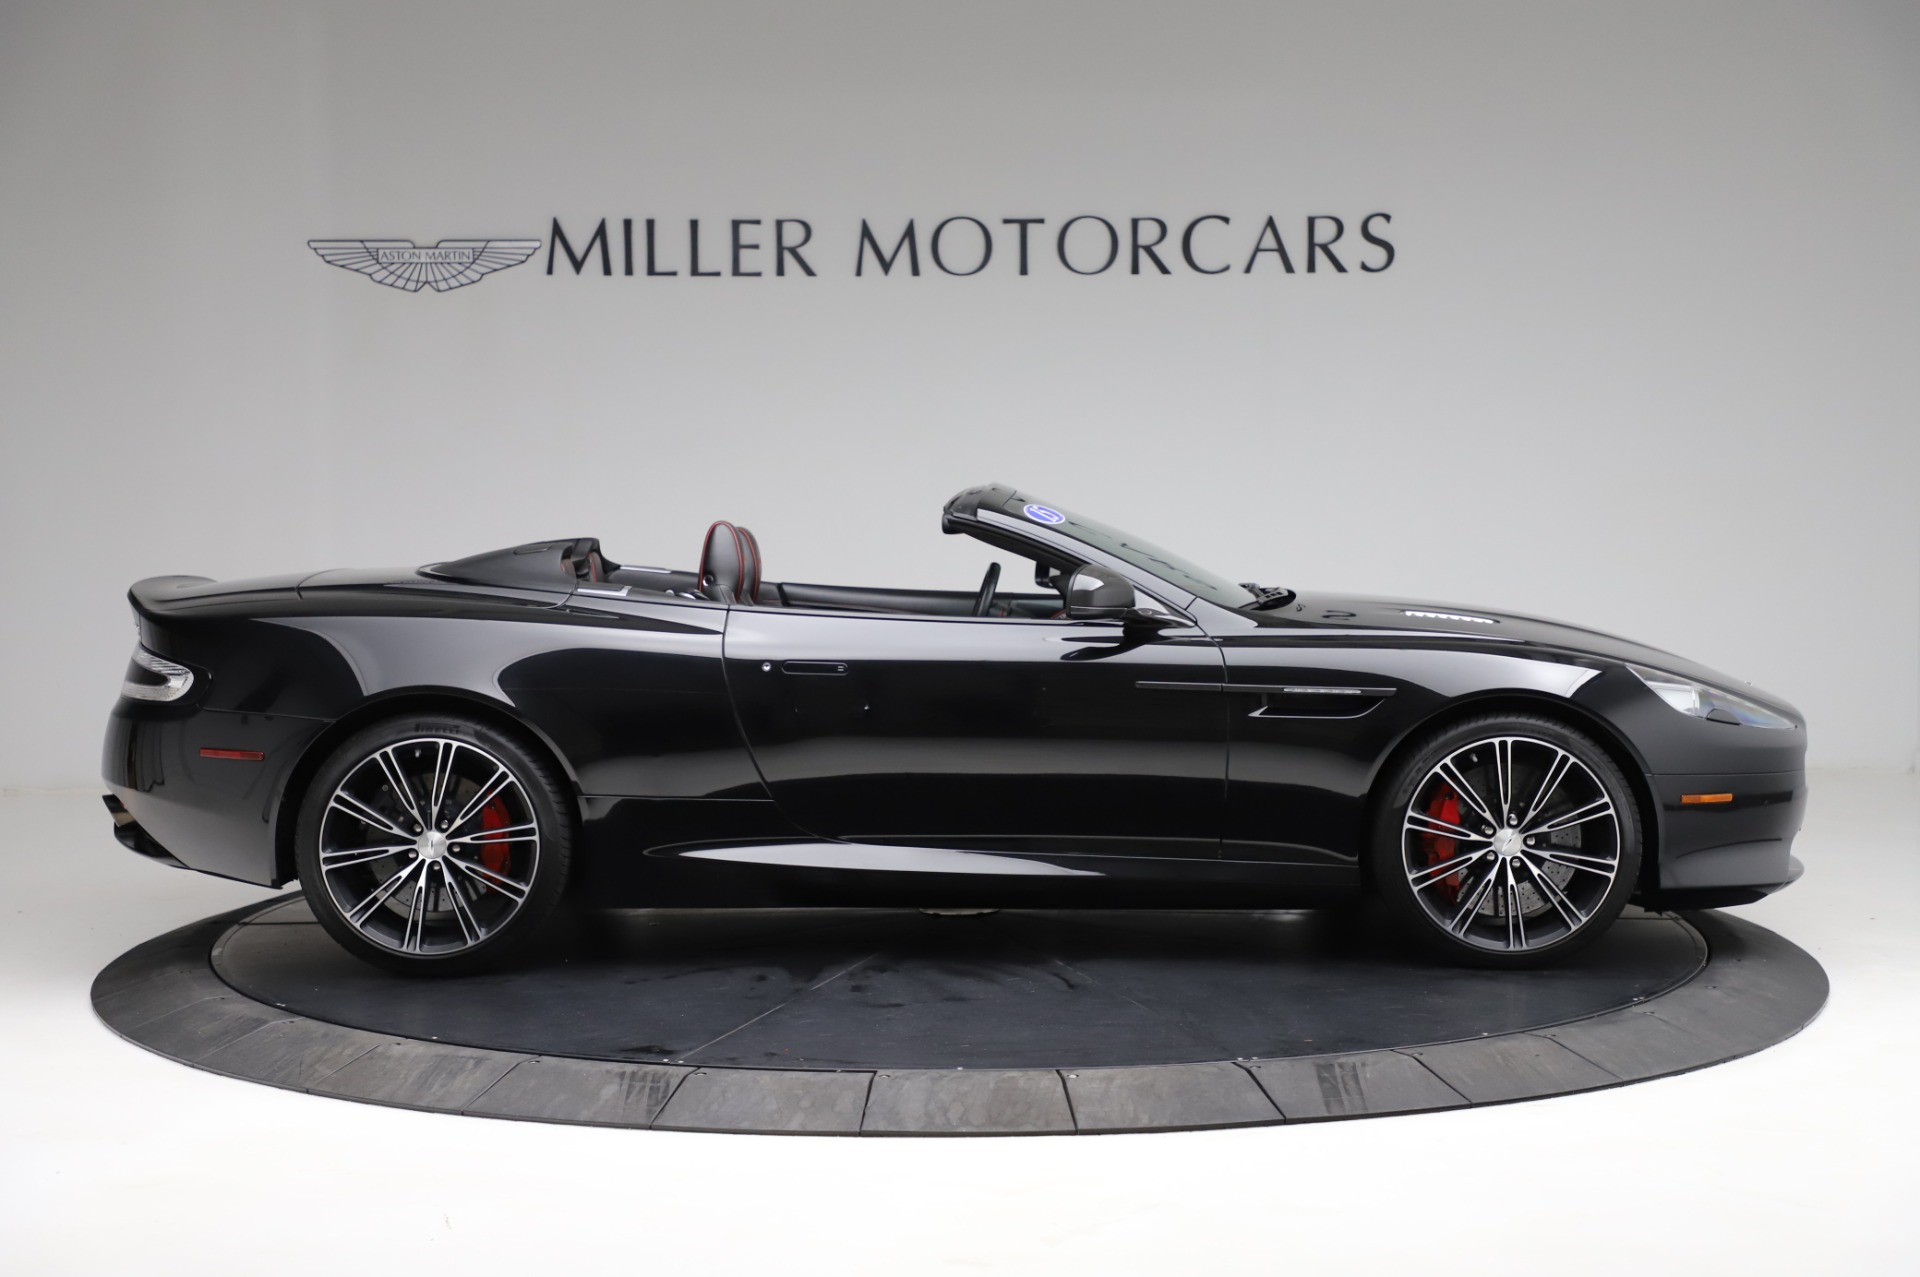 Used 2015 Aston Martin DB9 Convertible For Sale In Westport, CT 1919_p8